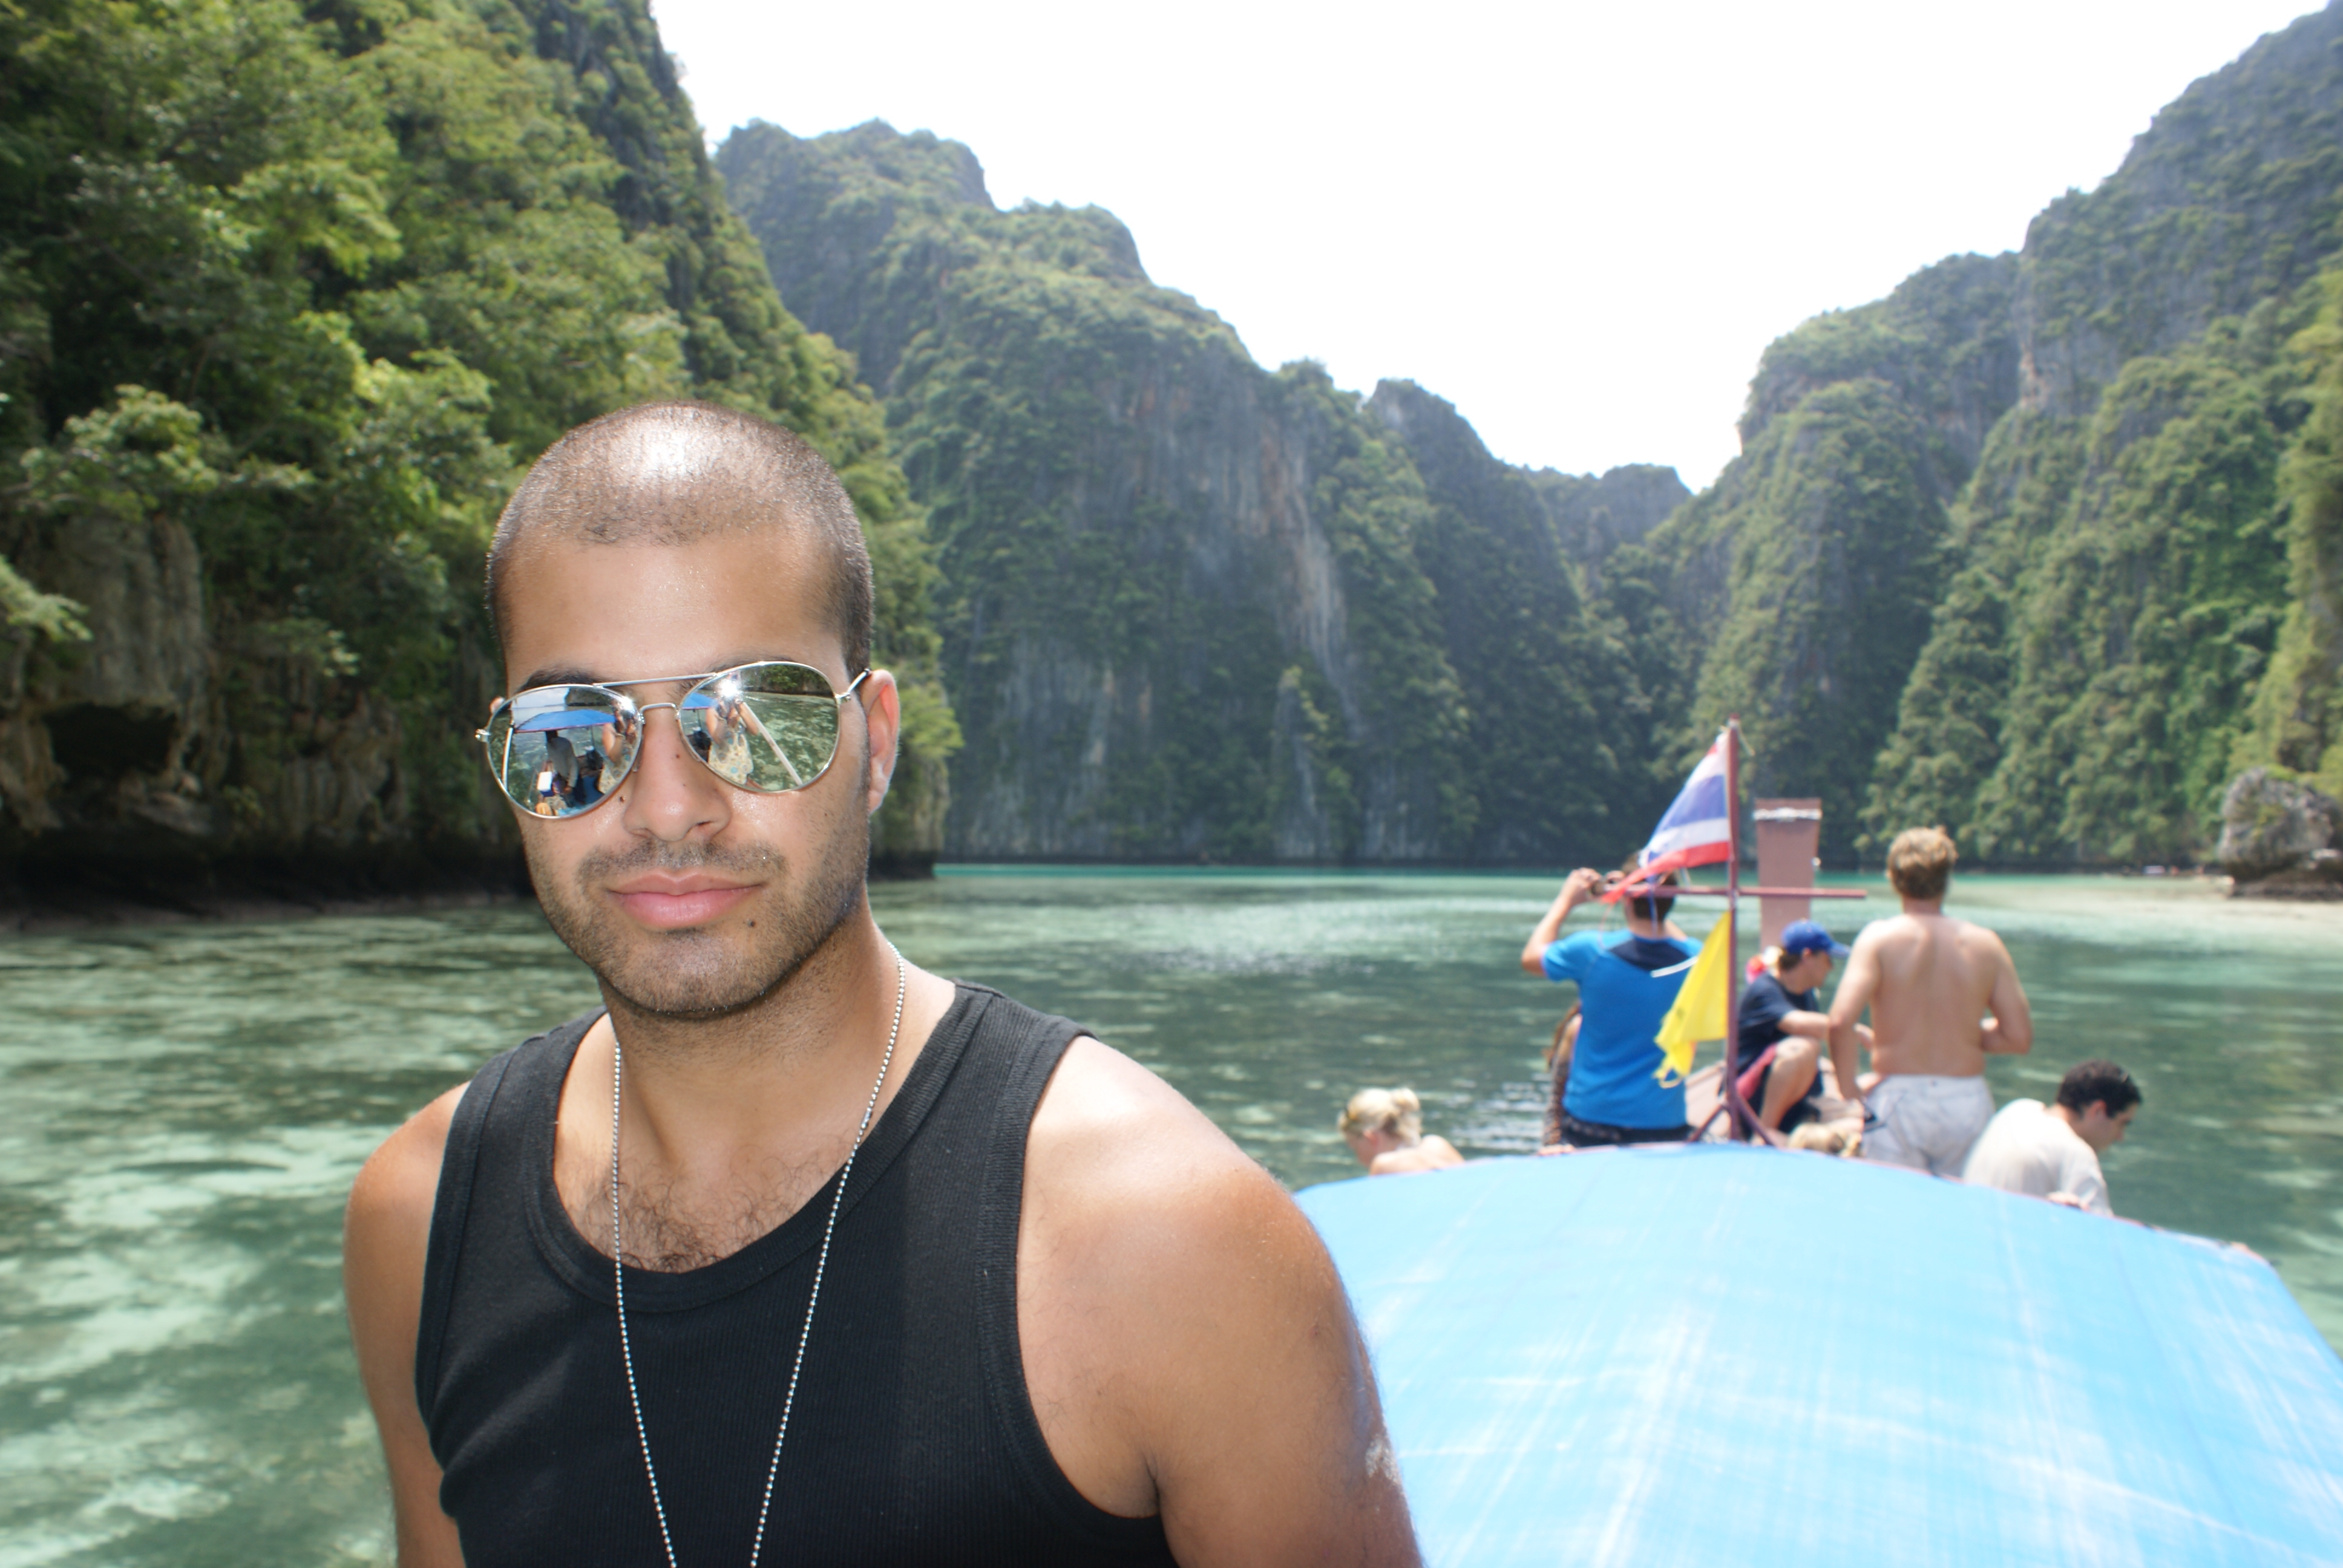 Career break travel, career breaks in Thailand, gap year travel, gap years in Thailand